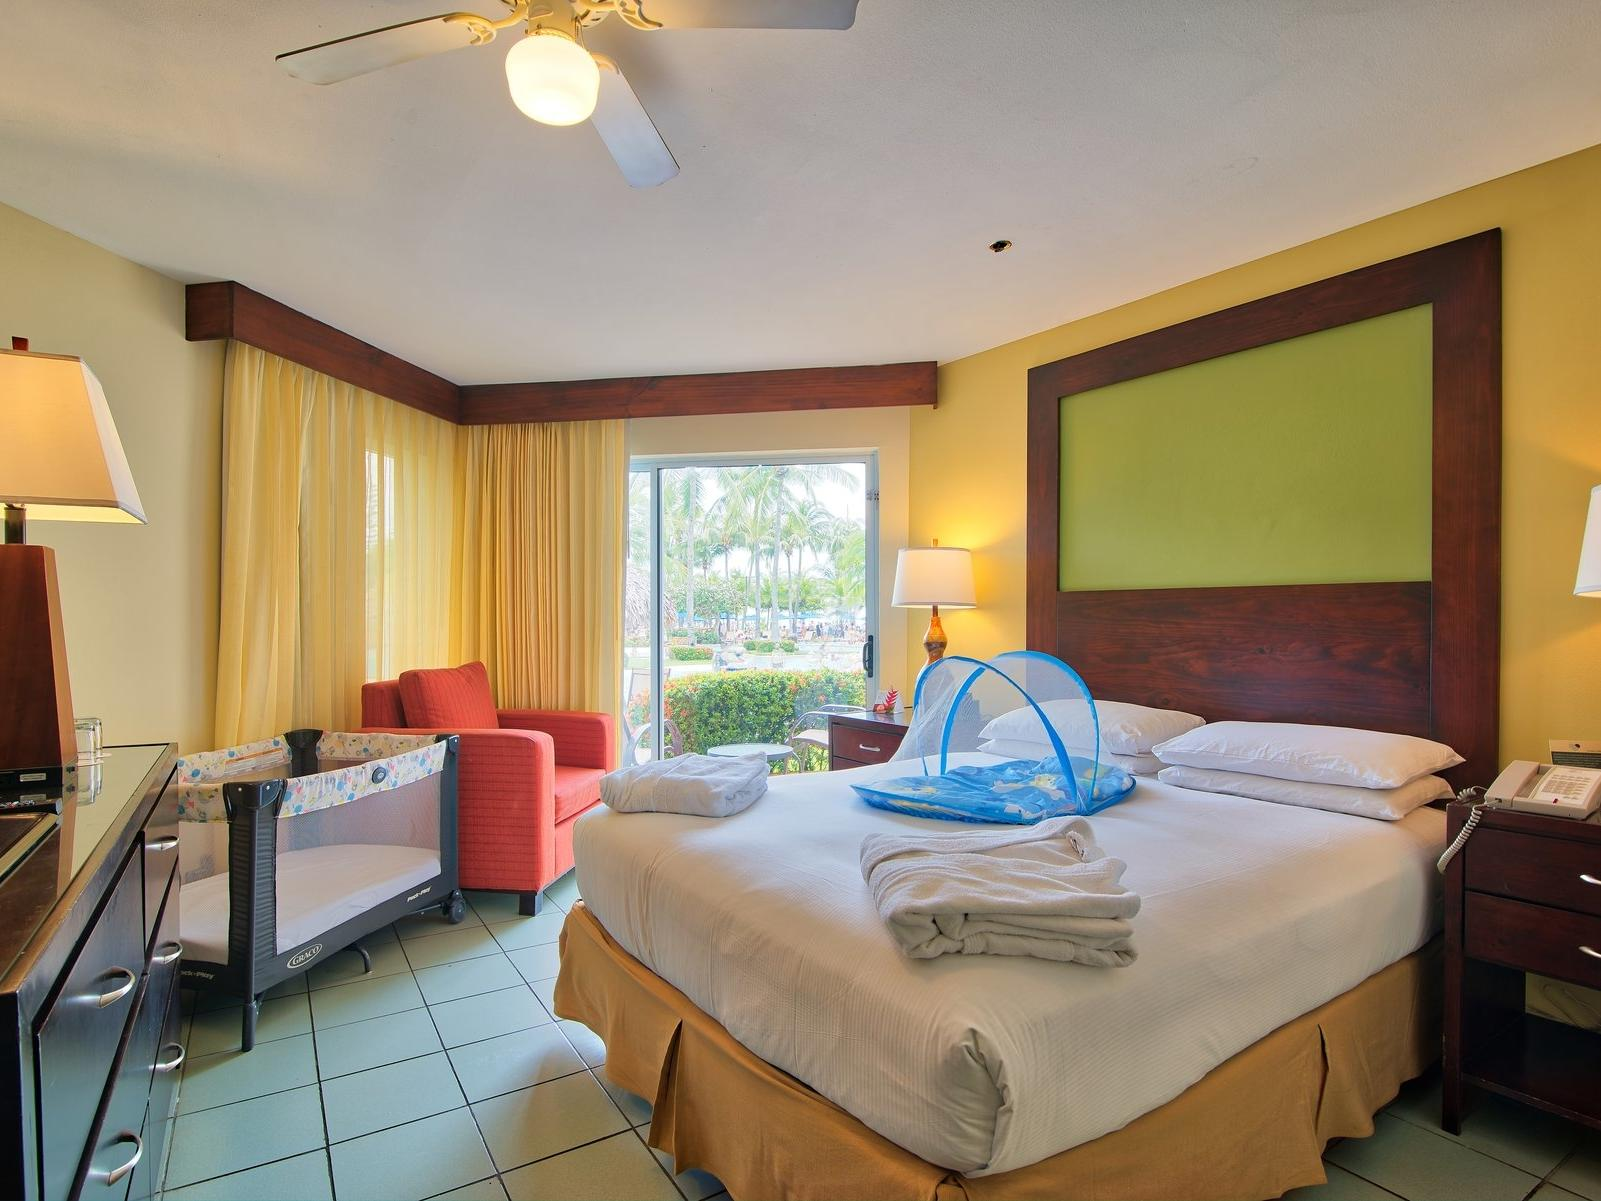 Jr suite family room with kids facilities  at Fiesta Resort